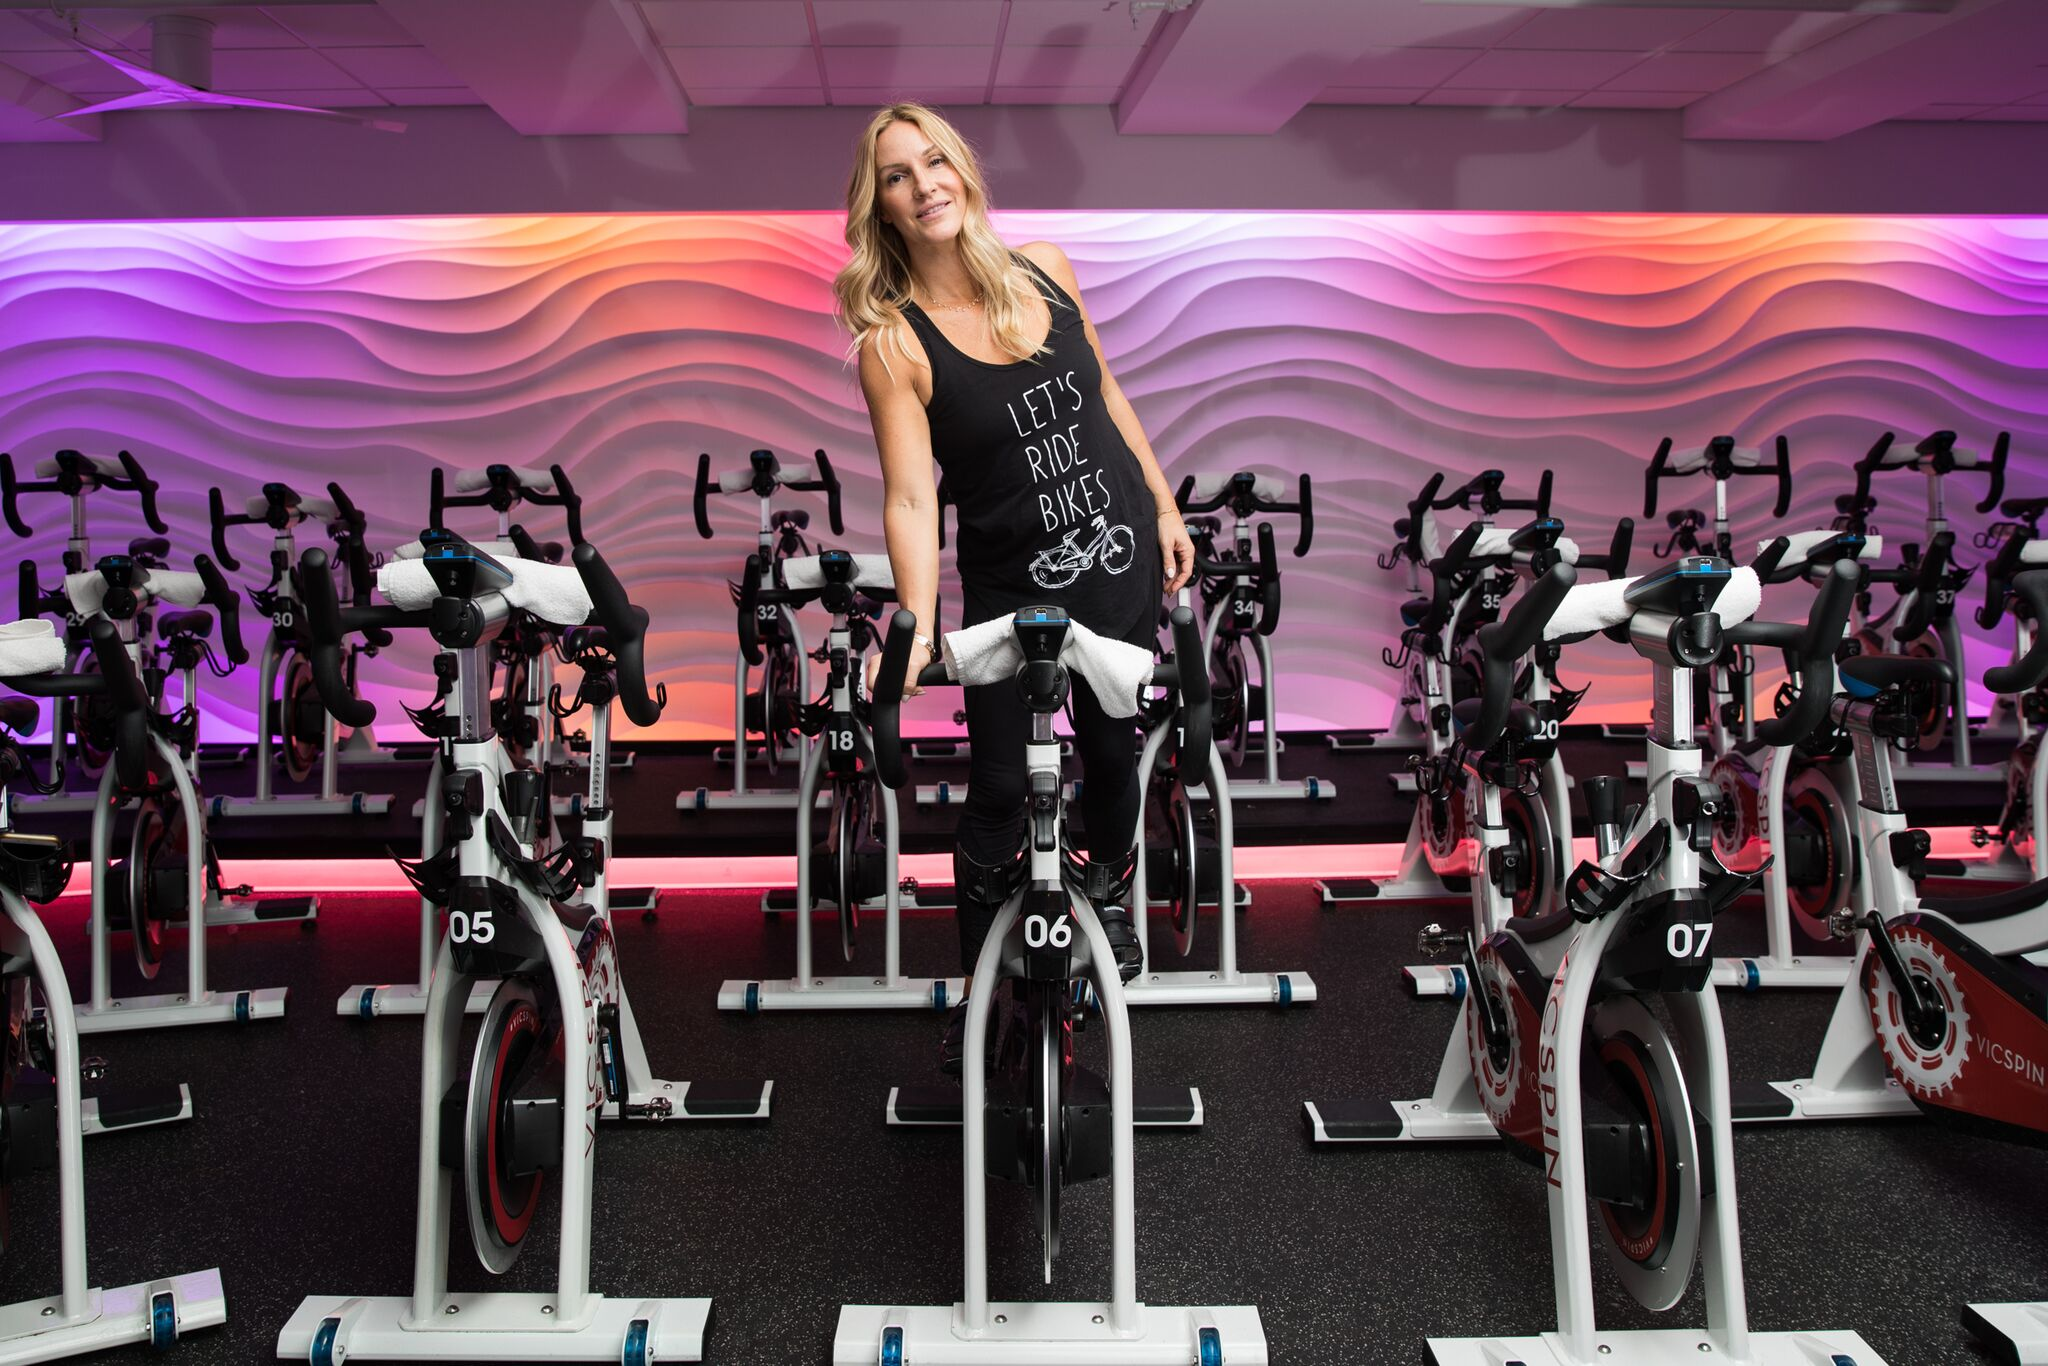 mademoiselle jules spinning at victoria park gym